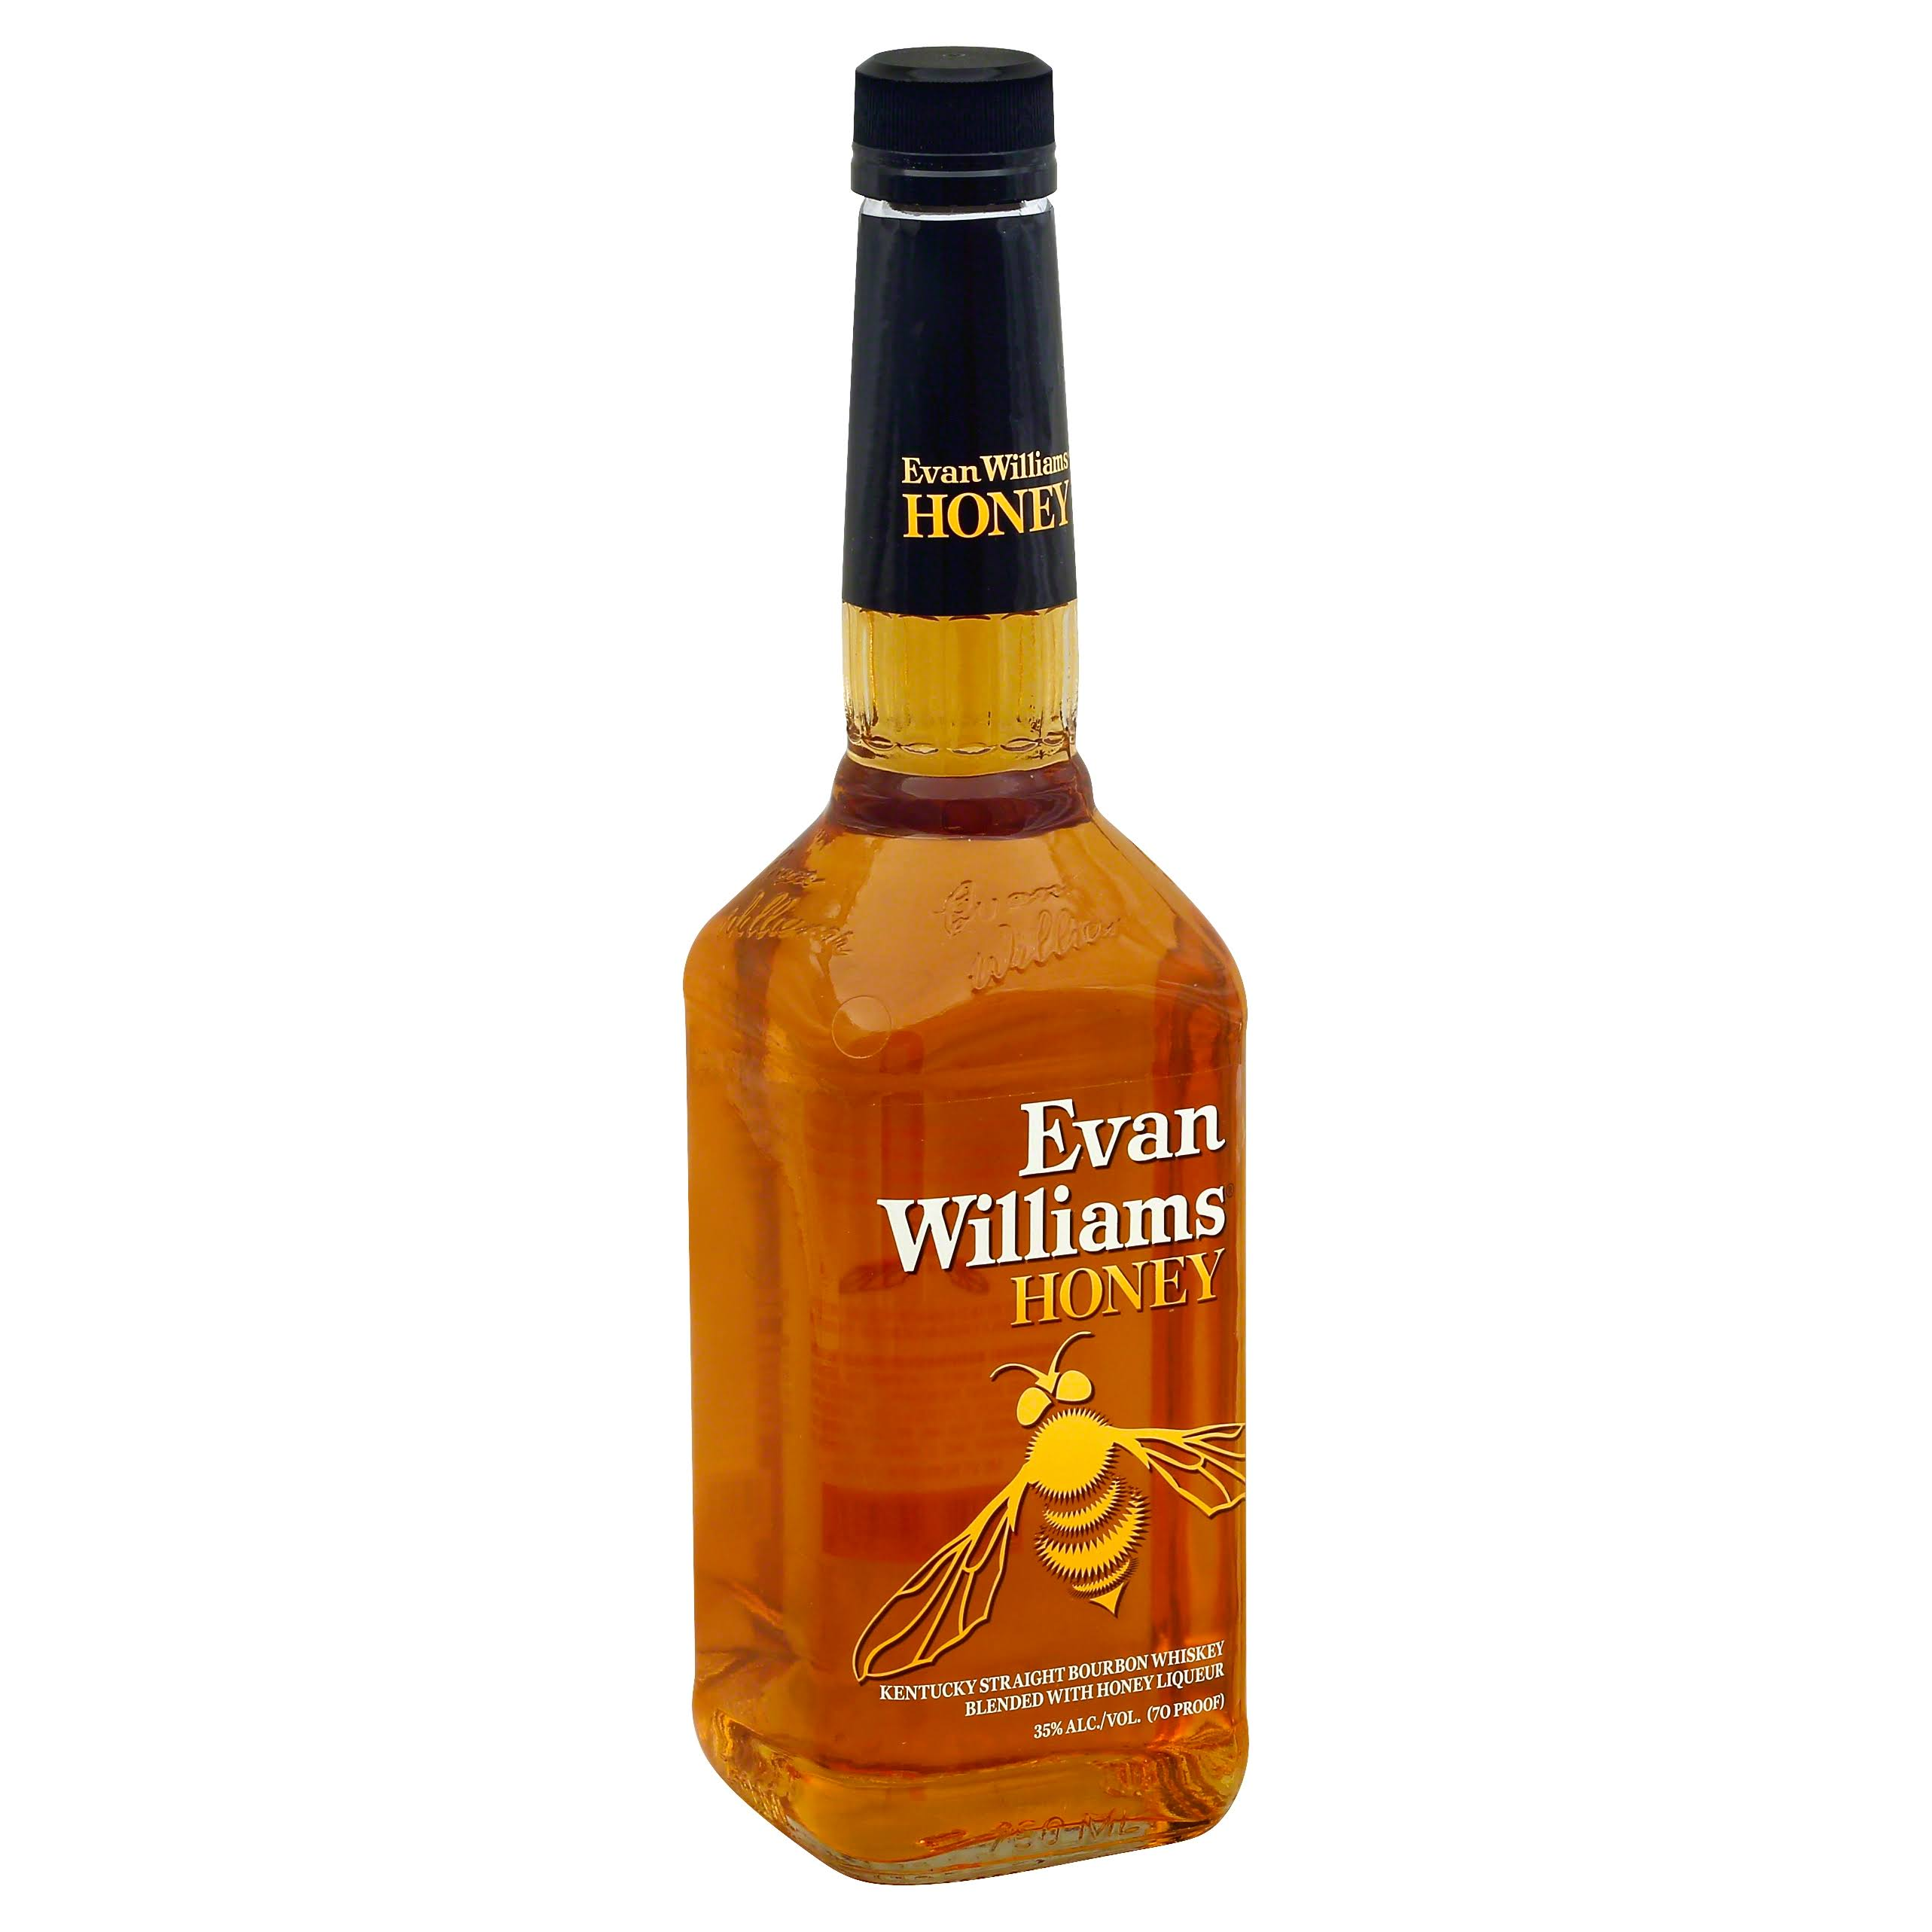 Evan Williams Honey Reserve - 0.7l